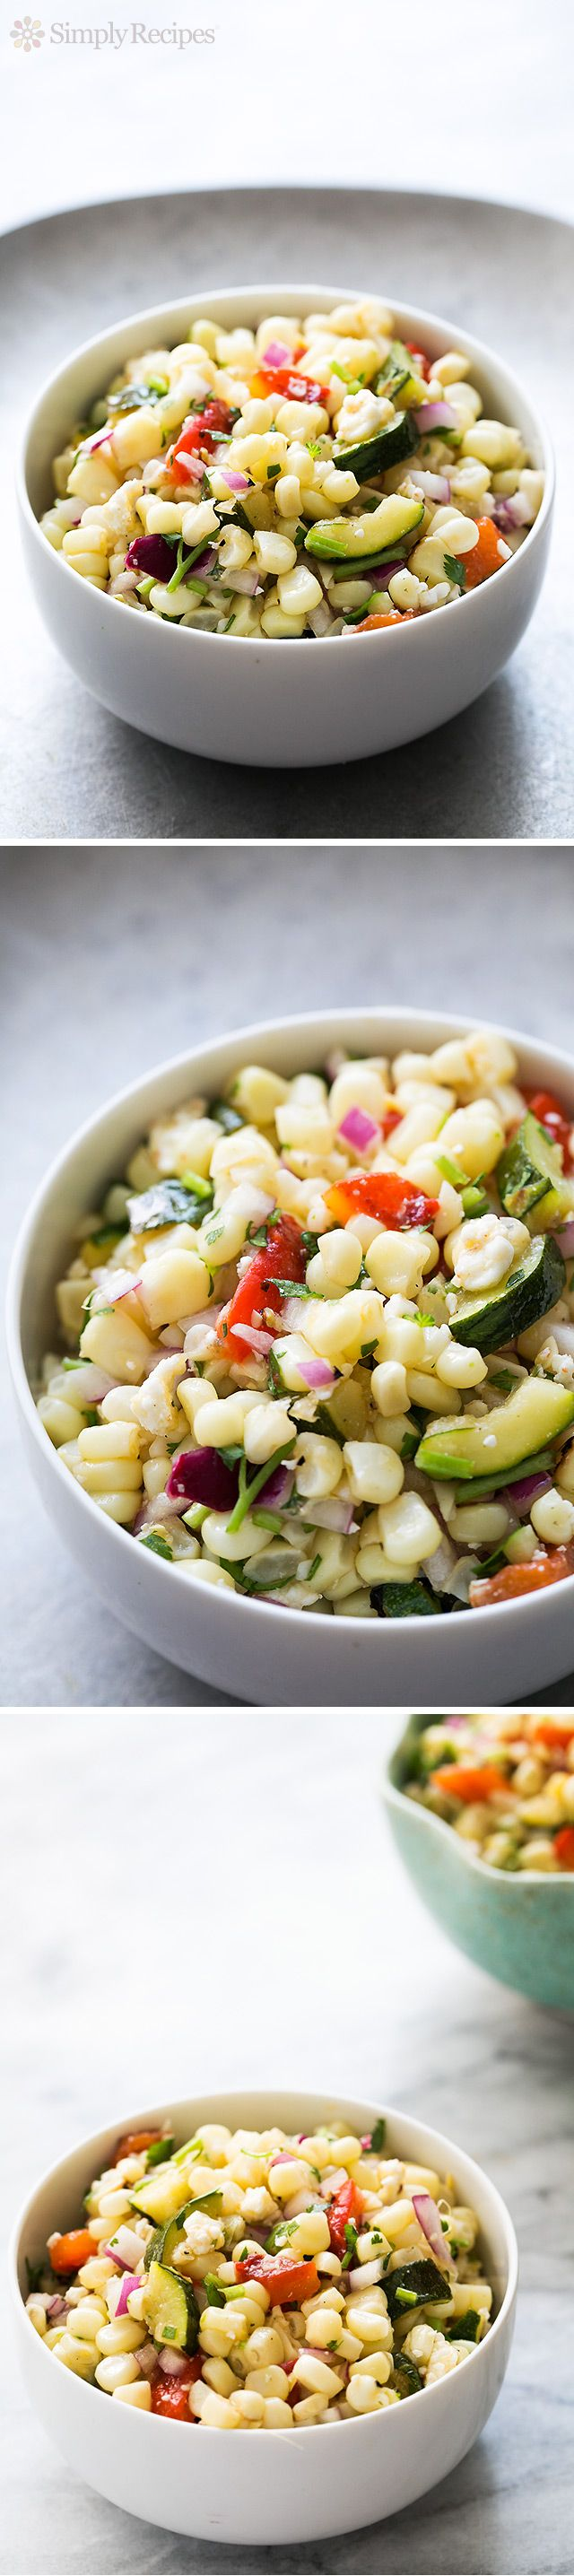 Grilled Corn Salad ~ Summery corn salad, made with grilled or toasted corn, zucchini, red bell pepper, red onions, cilantro, and seasoned with cumin, oil and vinegar. ~ SimplyRecipes.com